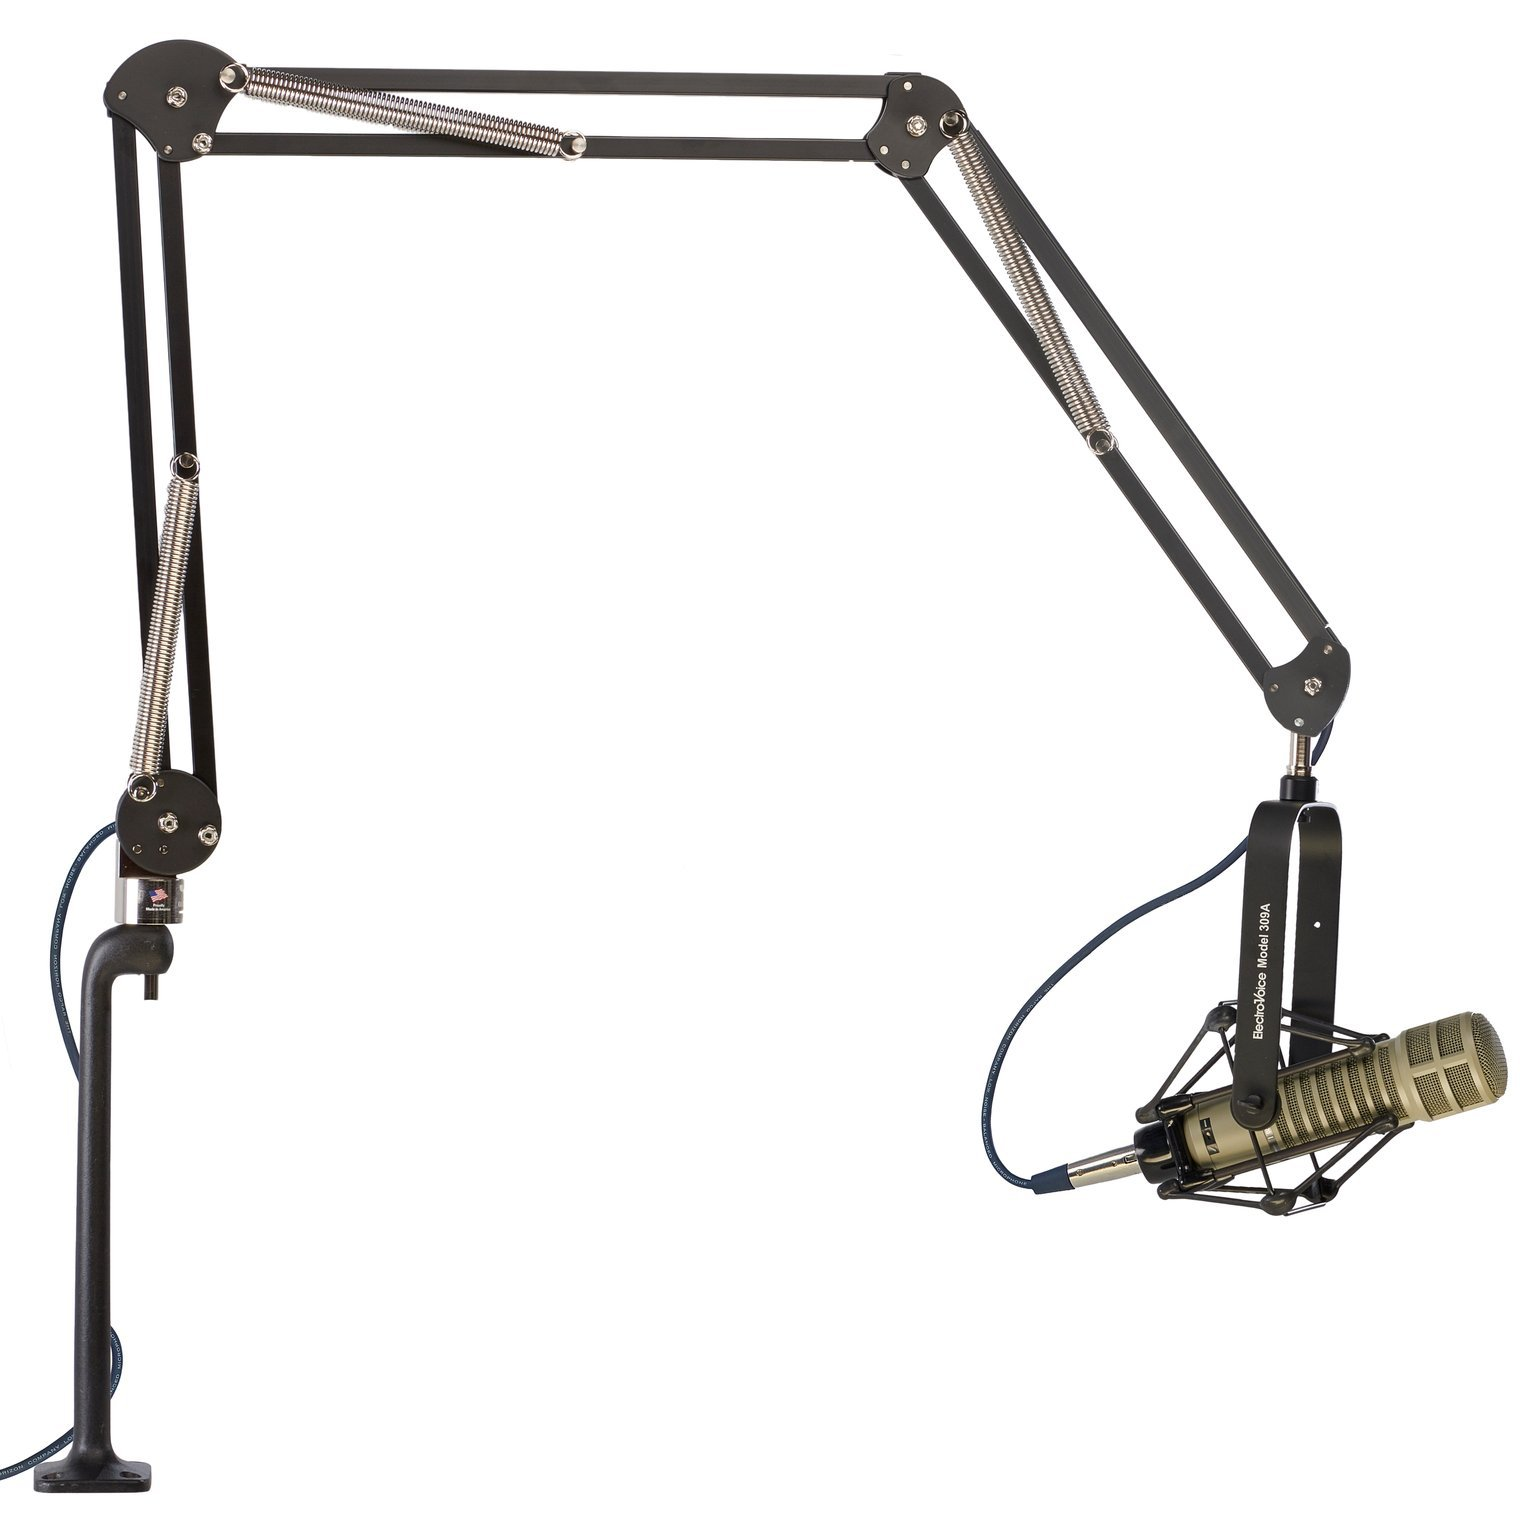 ProBoom 52900-B Elite 3-Arm Extended Microphone Arm with 12'' Cast Aluminum Riser, 46.5'' (118.1 cm) Reach, Holds Up to 2.5 lbs., Black/Chrome